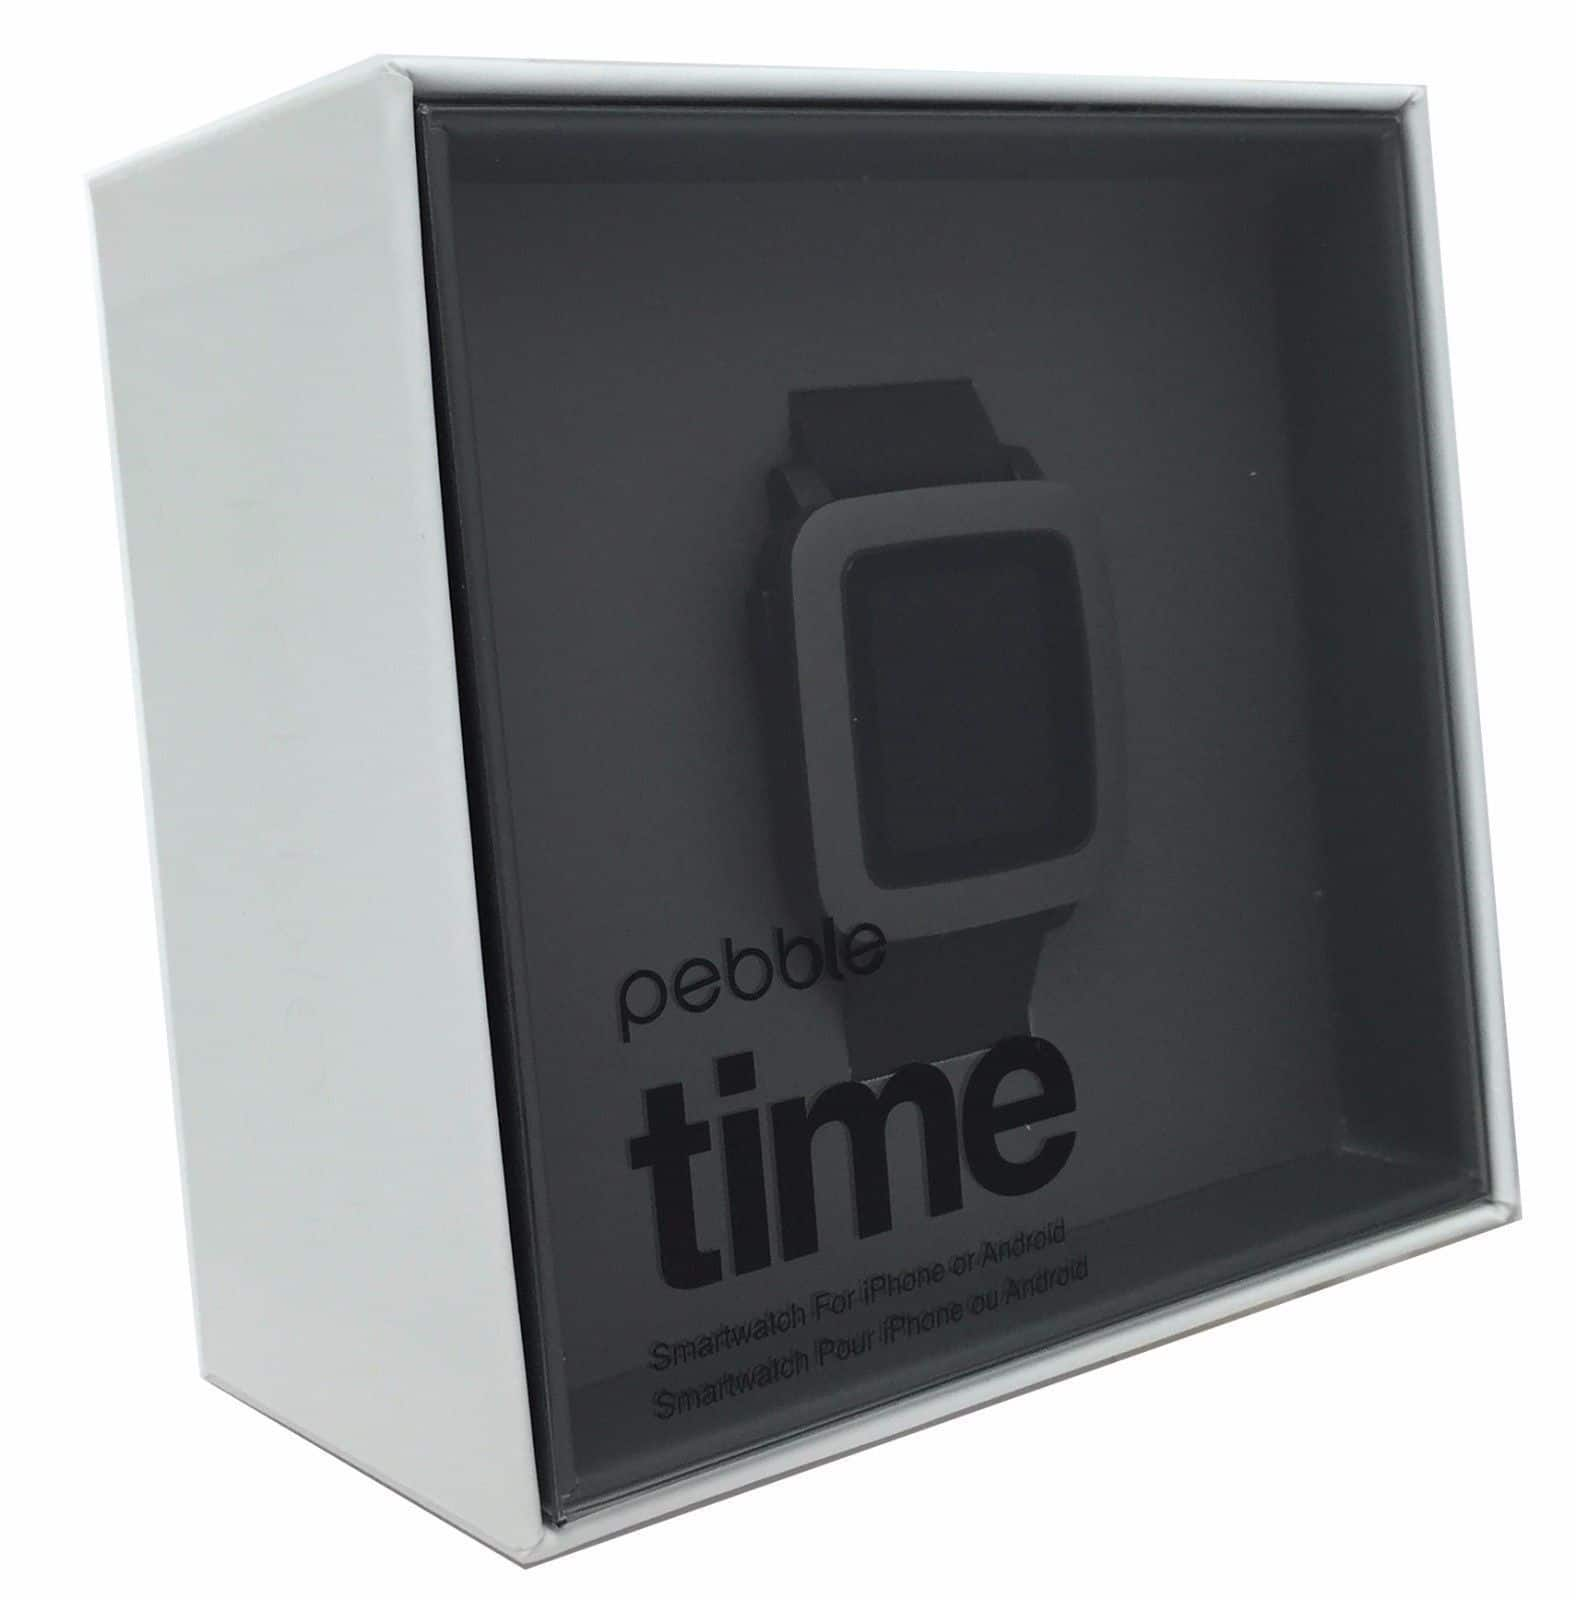 Pebble Time iPhone/Android Bluetooth Water Resistant Smartwatch $85 + Free Shipping (eBay Daily Deal)